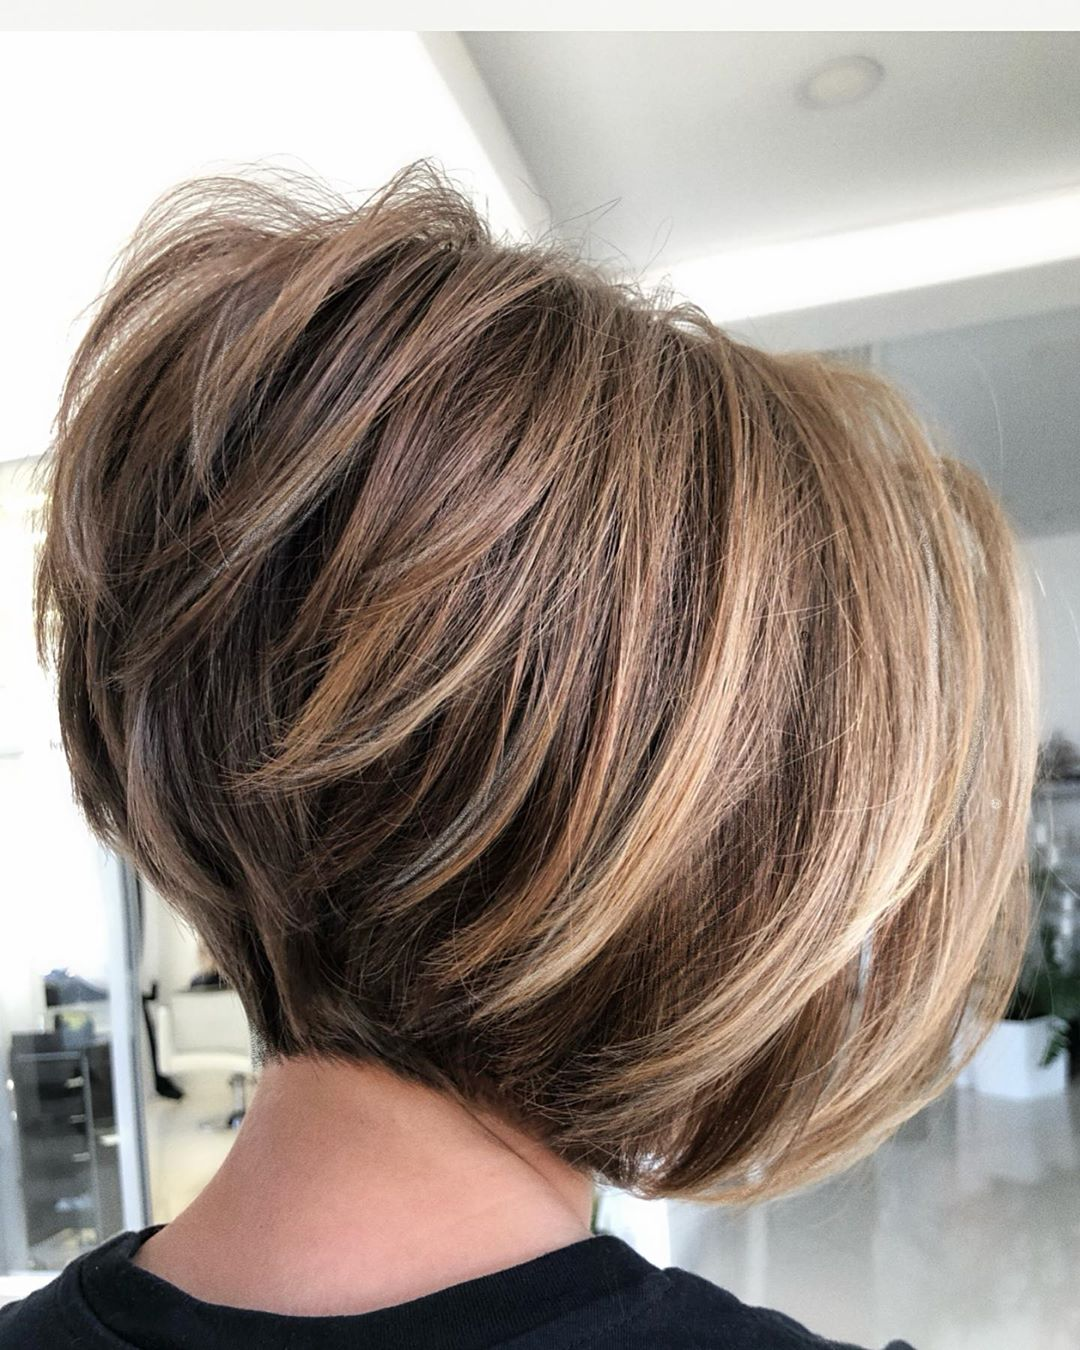 Short Inverted Bob for Thick Hair